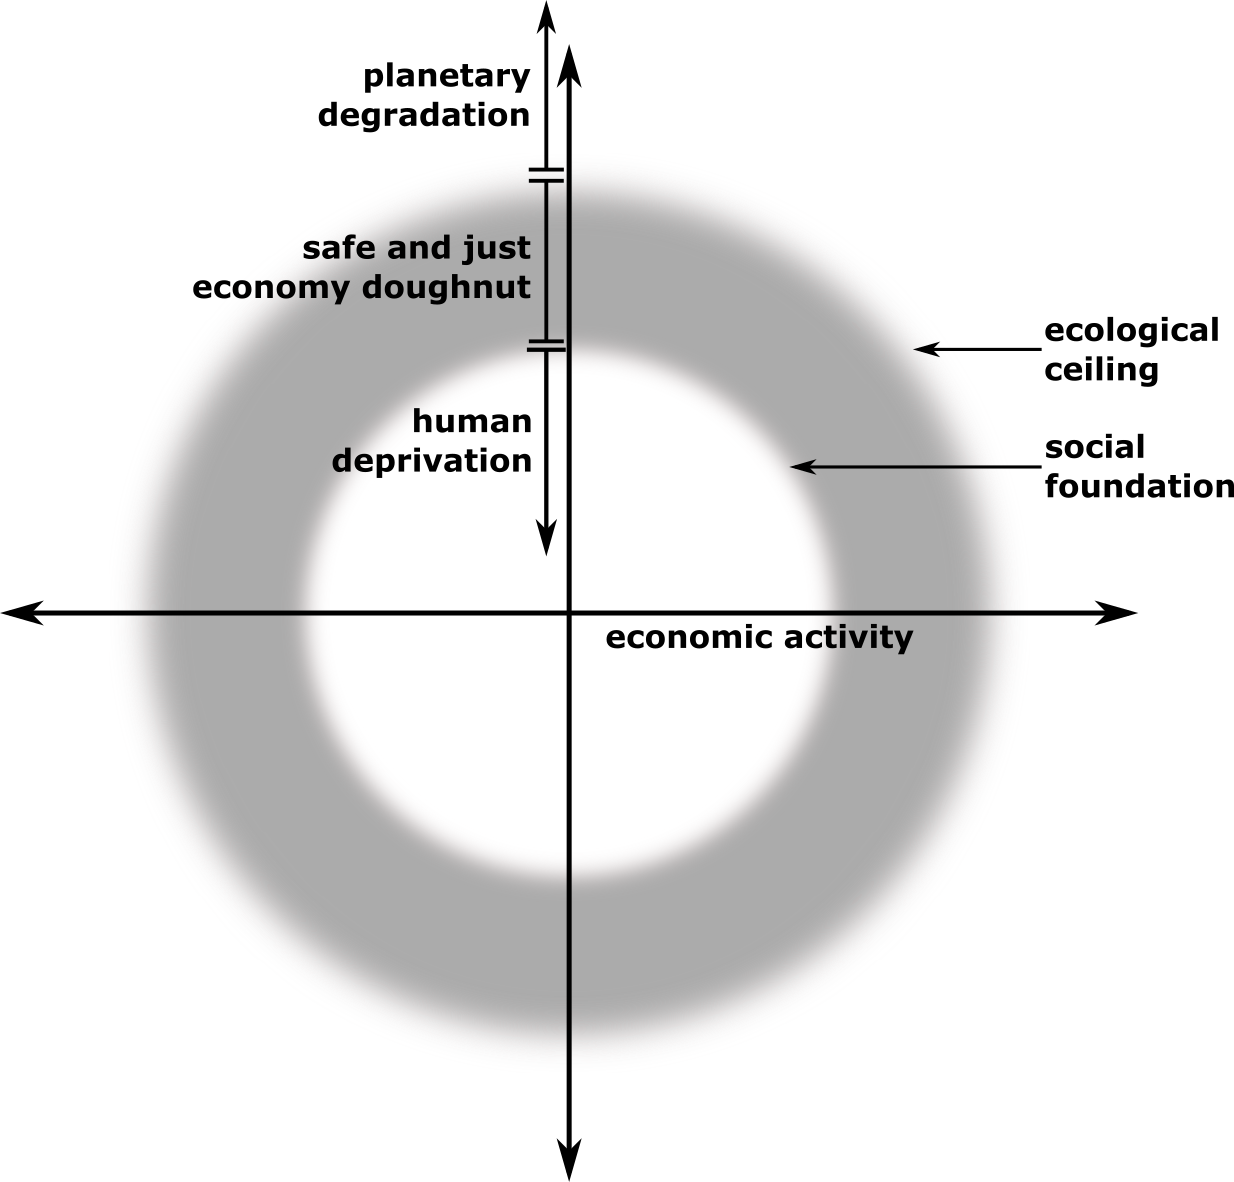 Doughnut Economics by Kate Raworth: The Doughnut